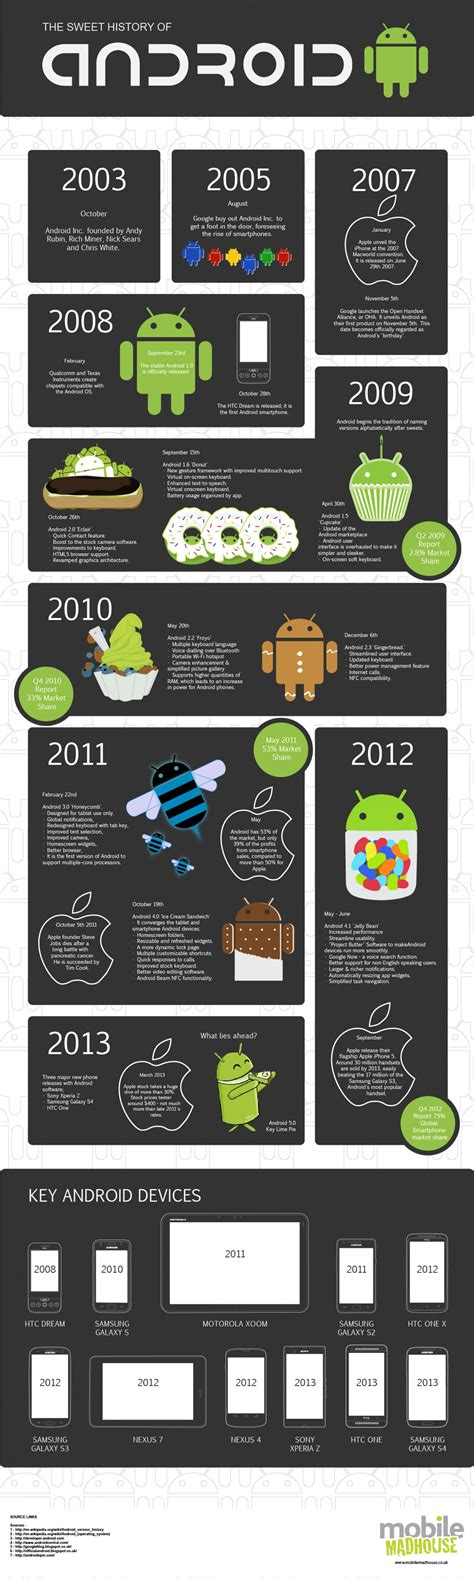 history of android the sweet history of android visual ly